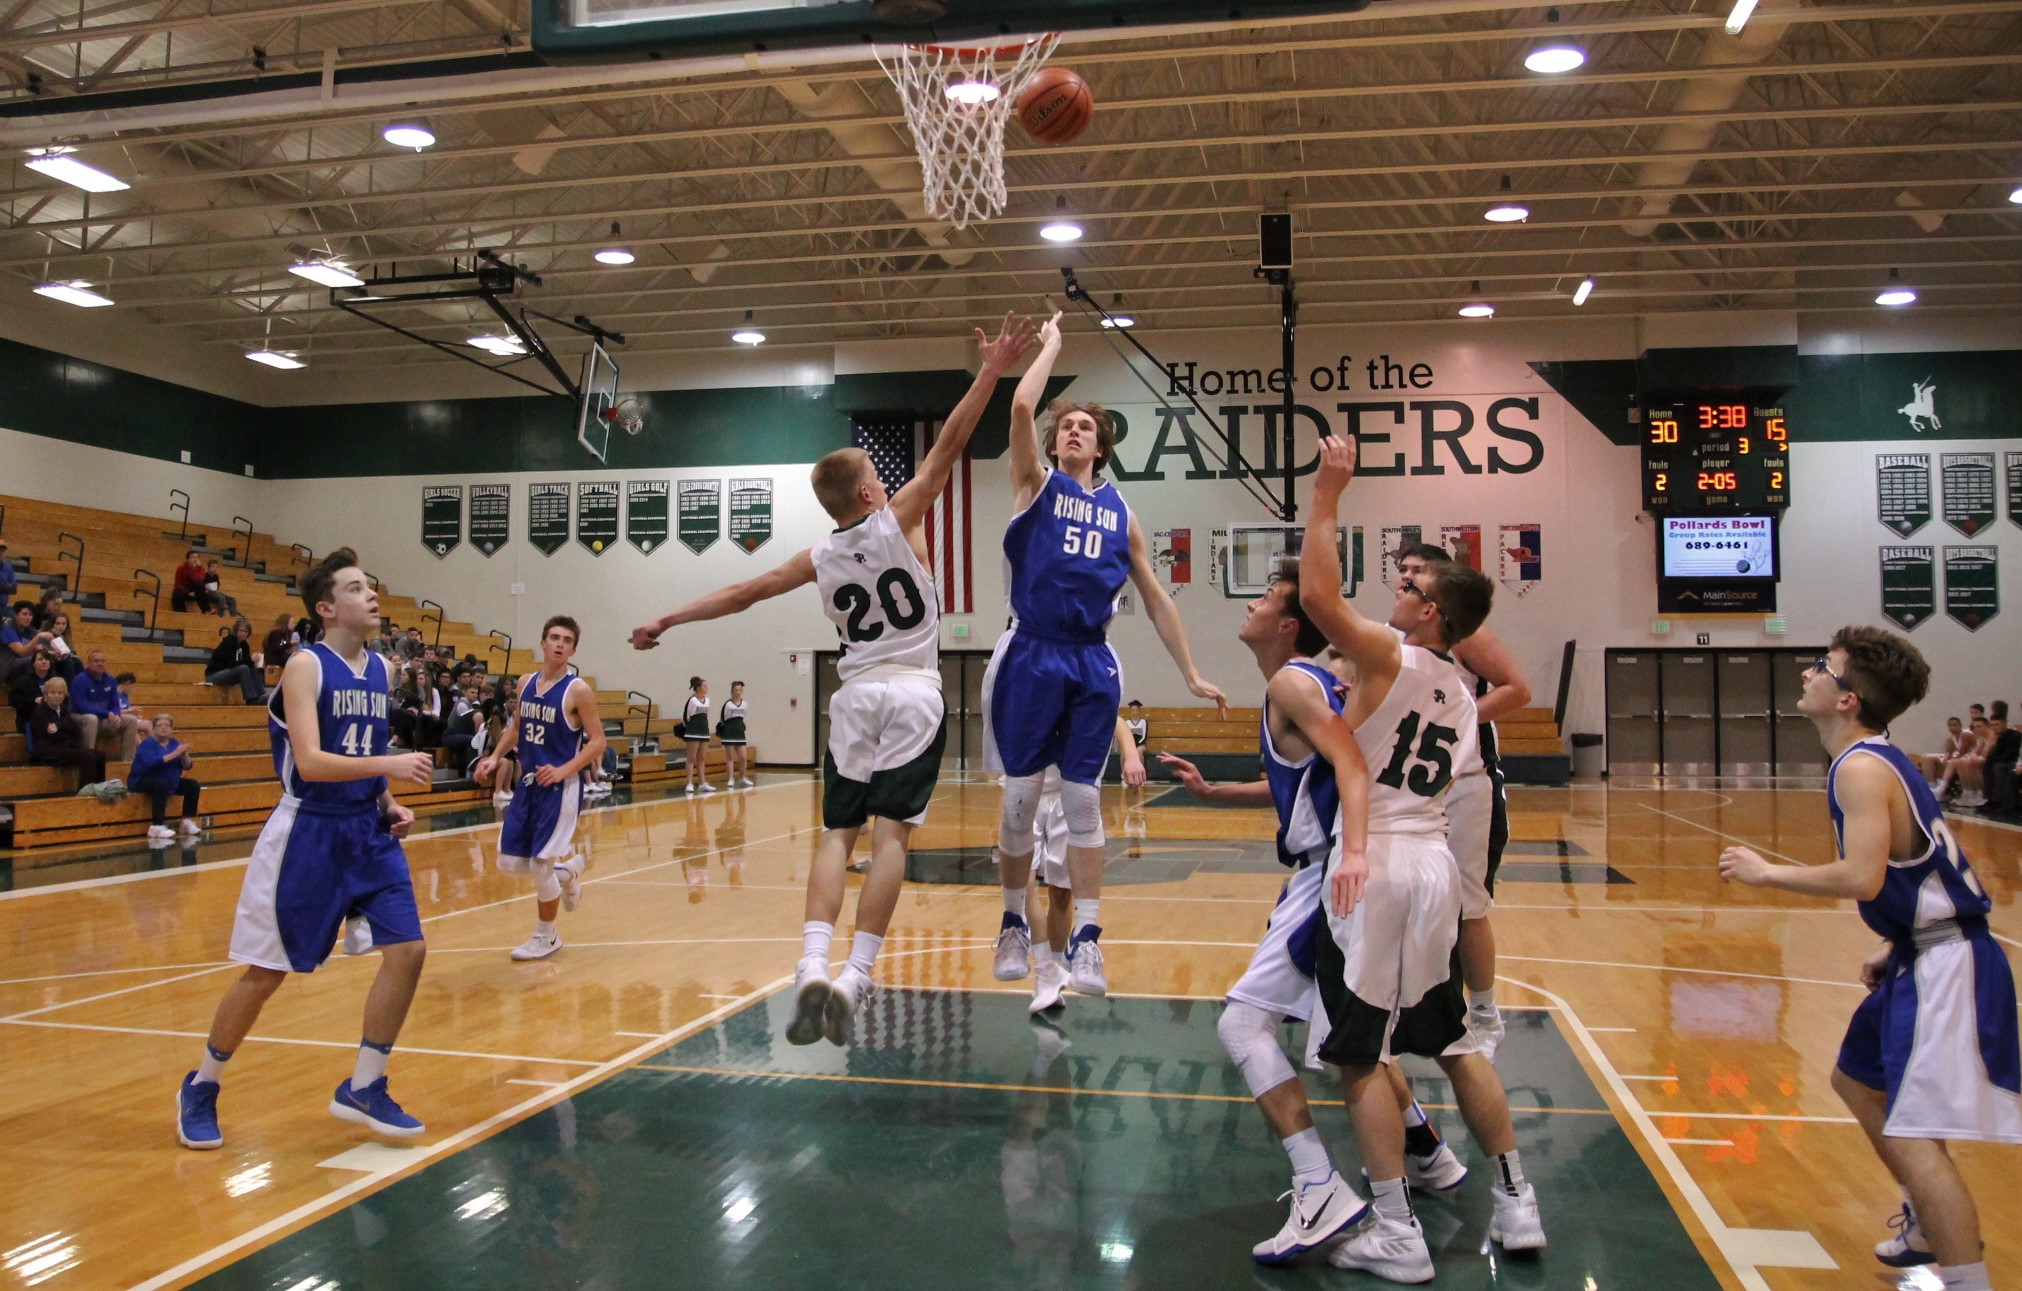 Shiners Draw Jets